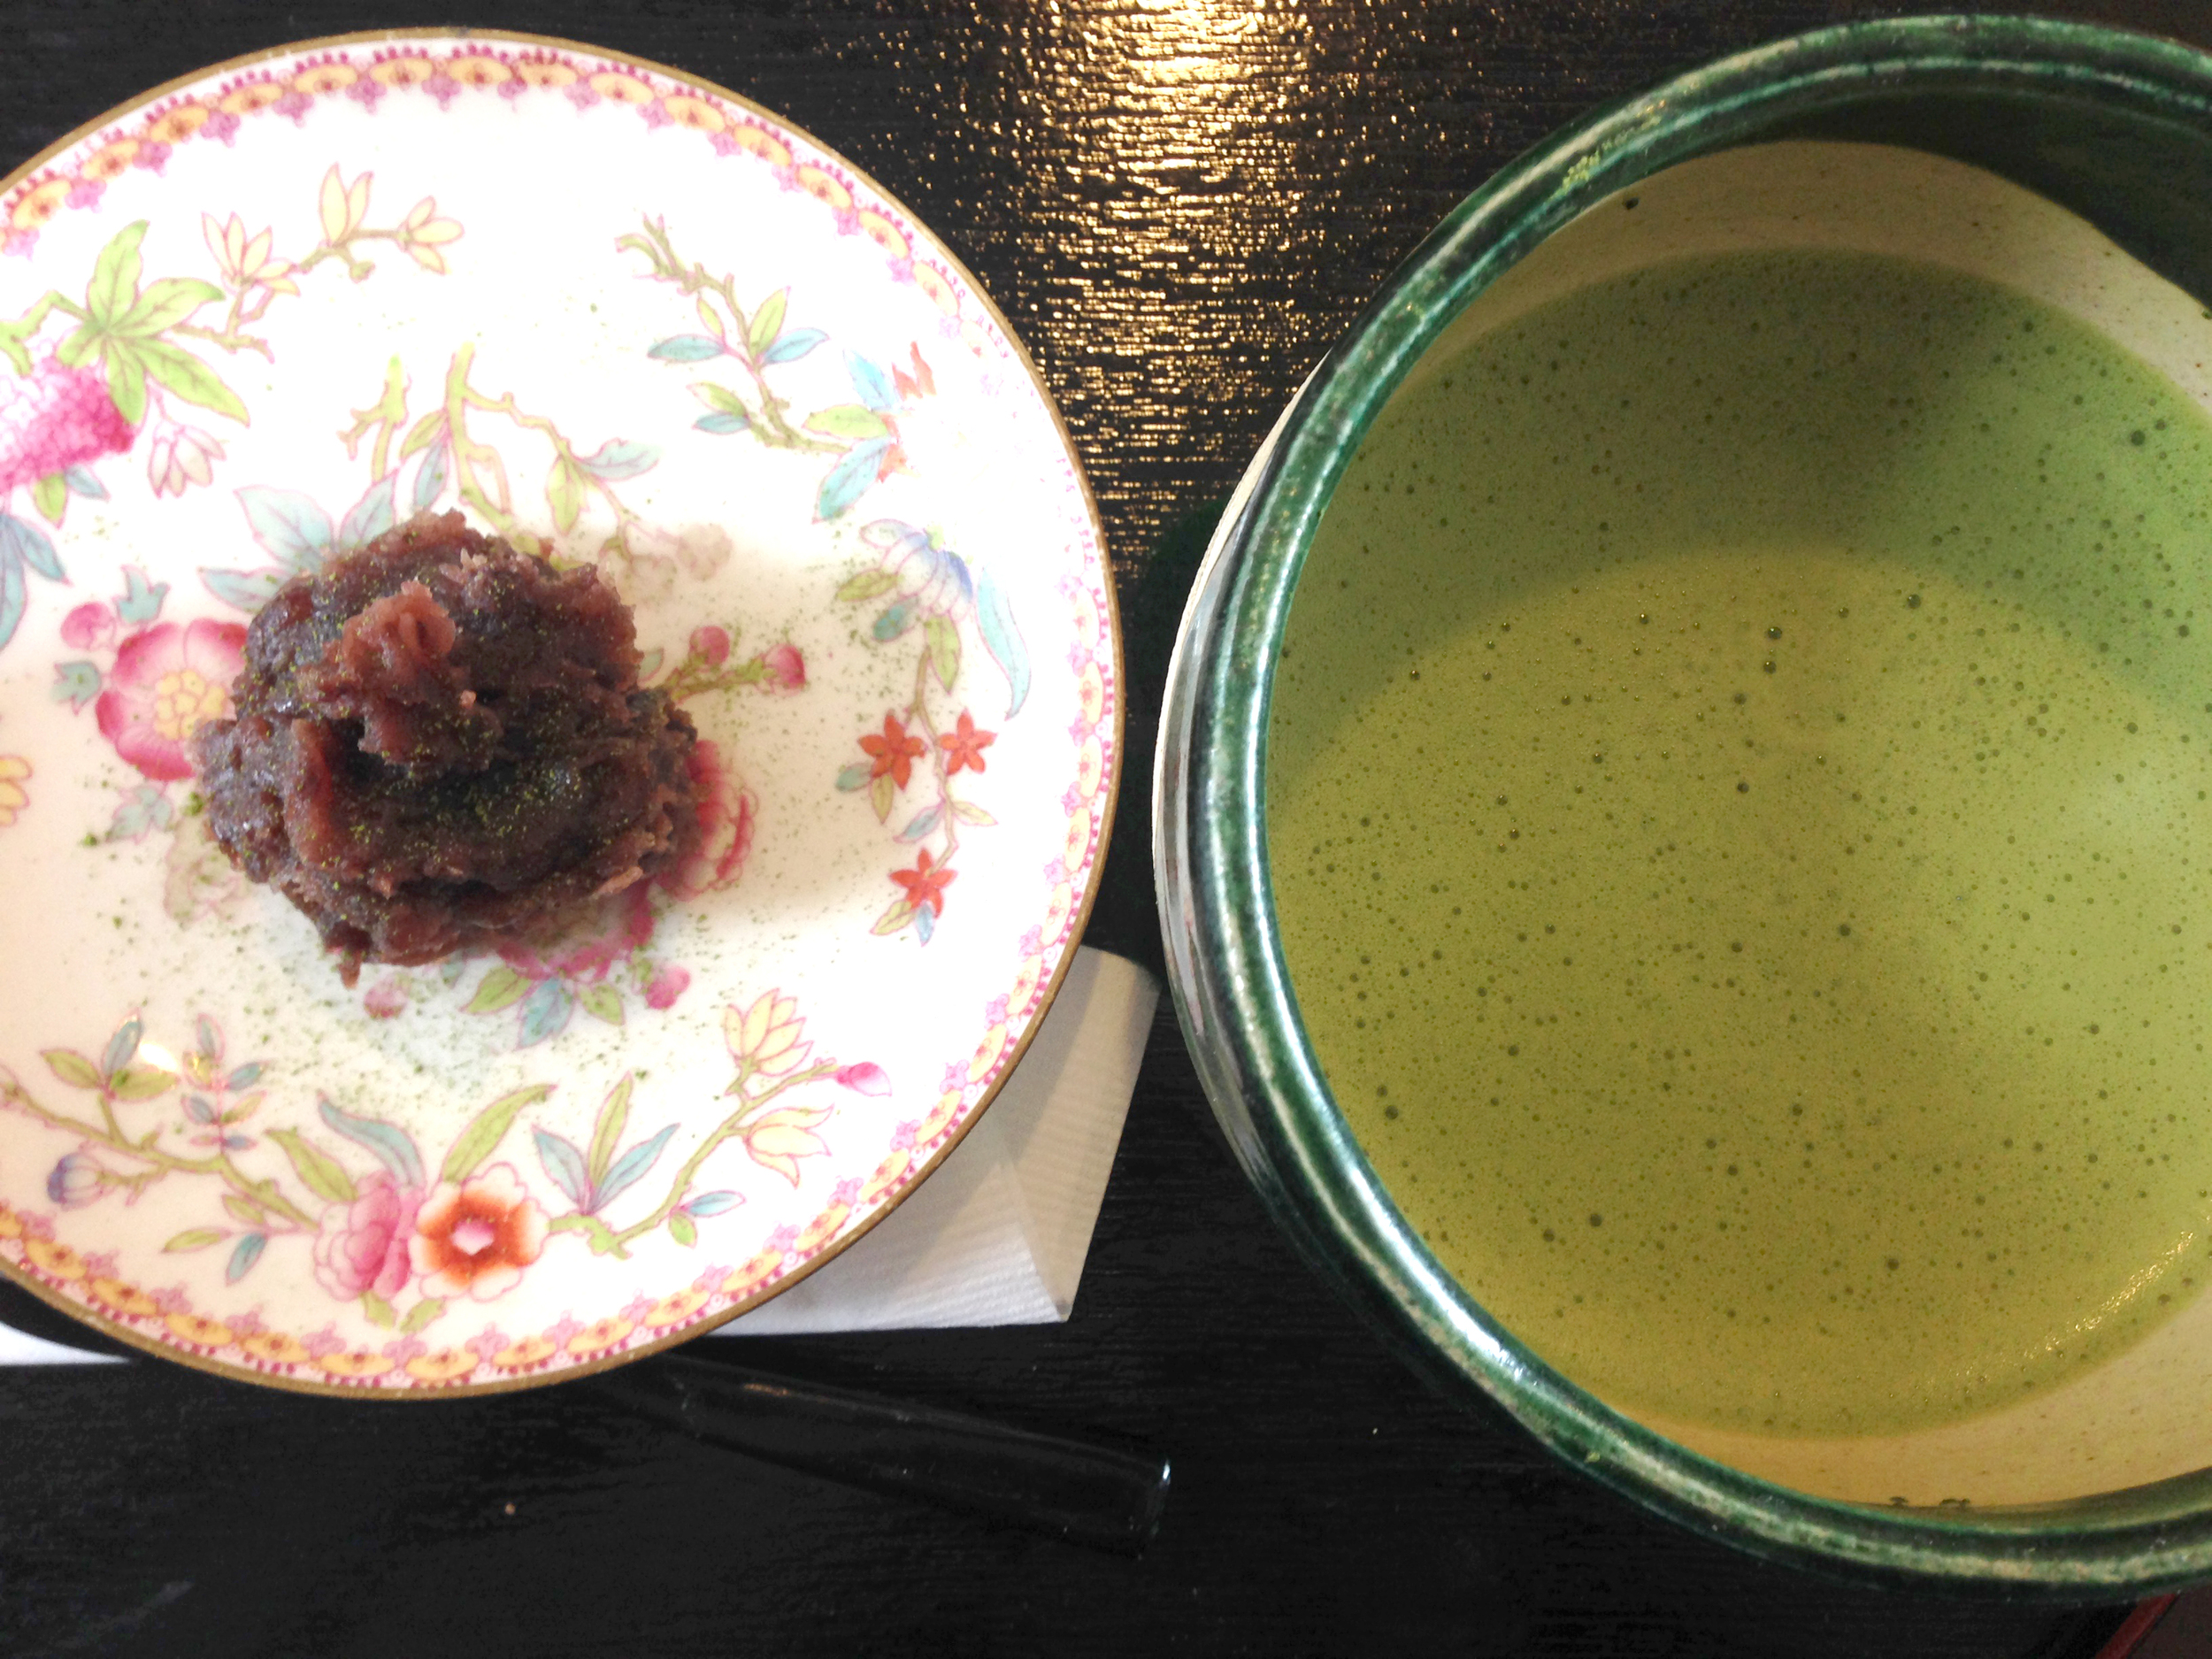 matcha set at Tan Tan Cafe